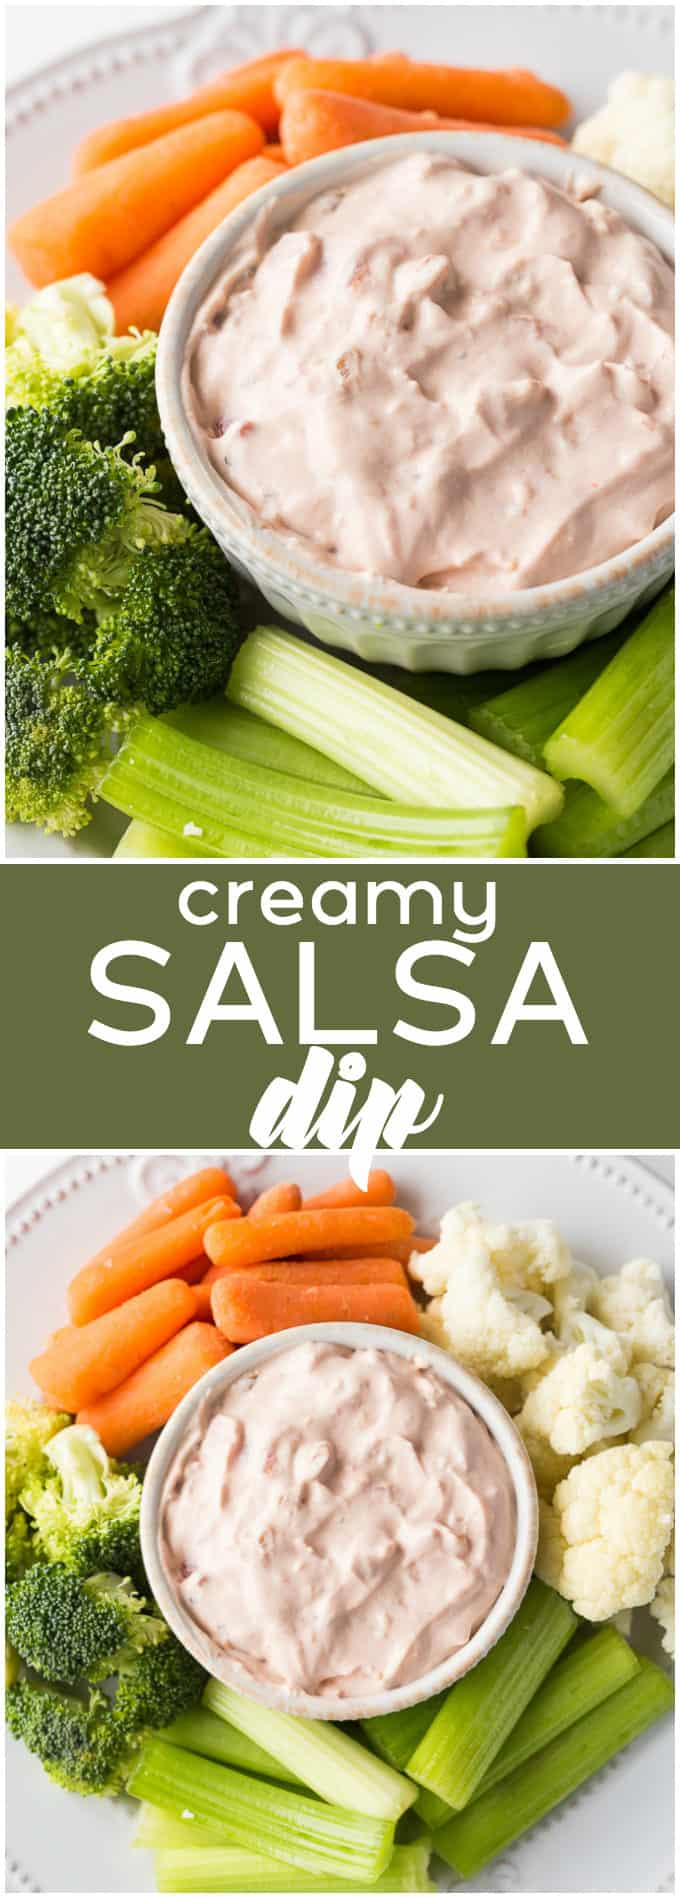 Creamy Salsa Dip - Only three ingredients in this simple dip recipe. It's always a hit at summer BBQs!